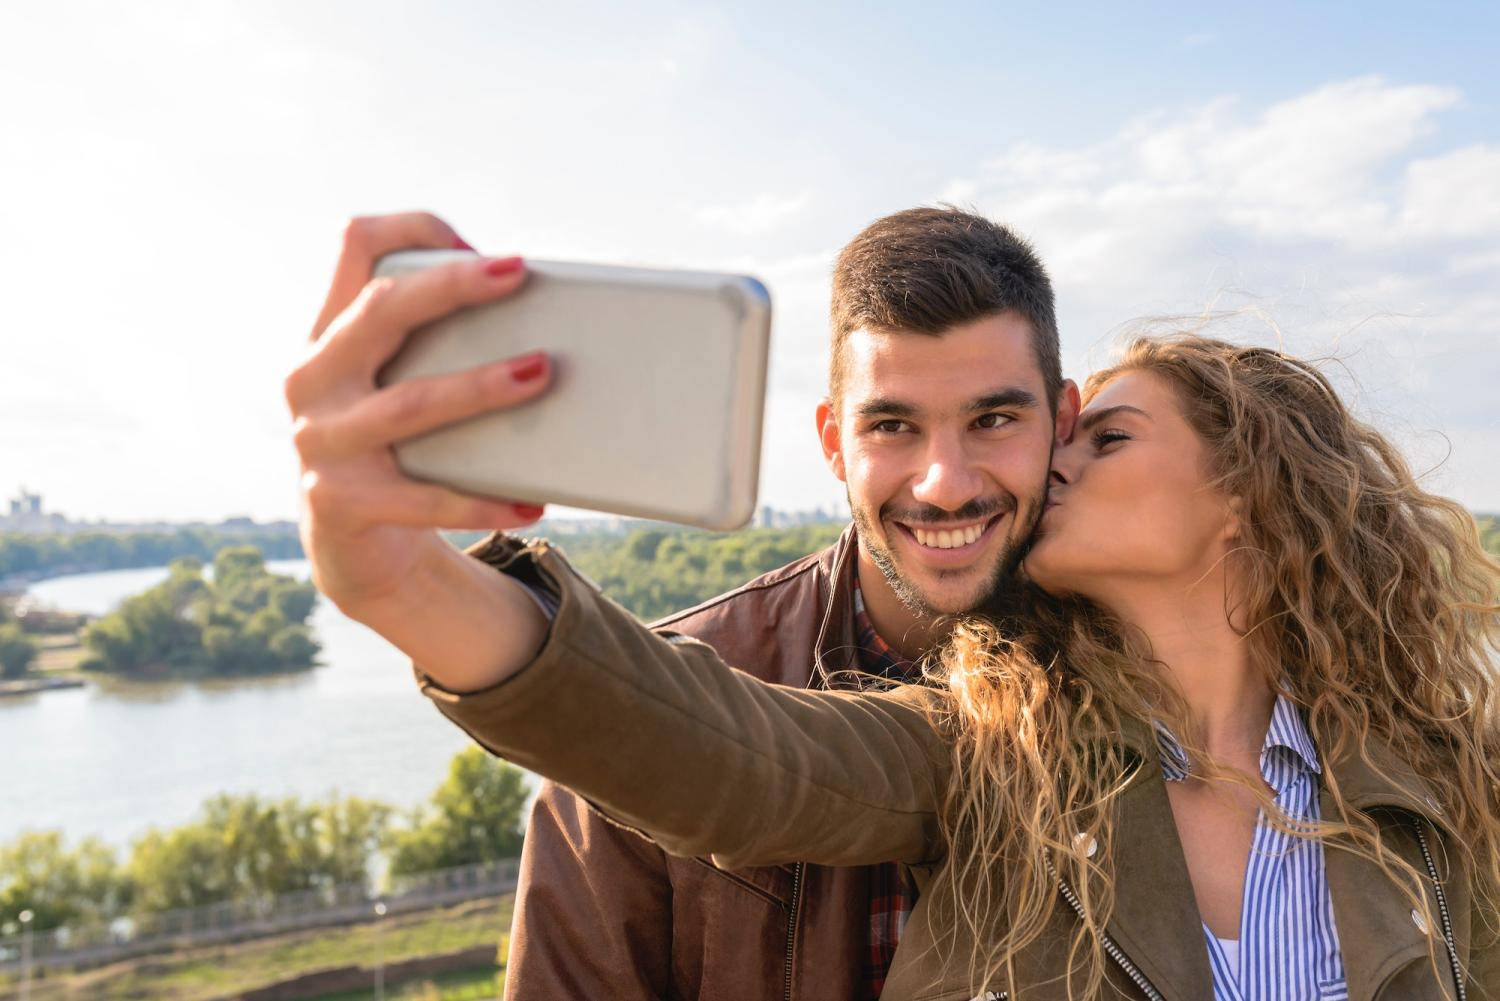 Couple taking a selfie with a smartphone